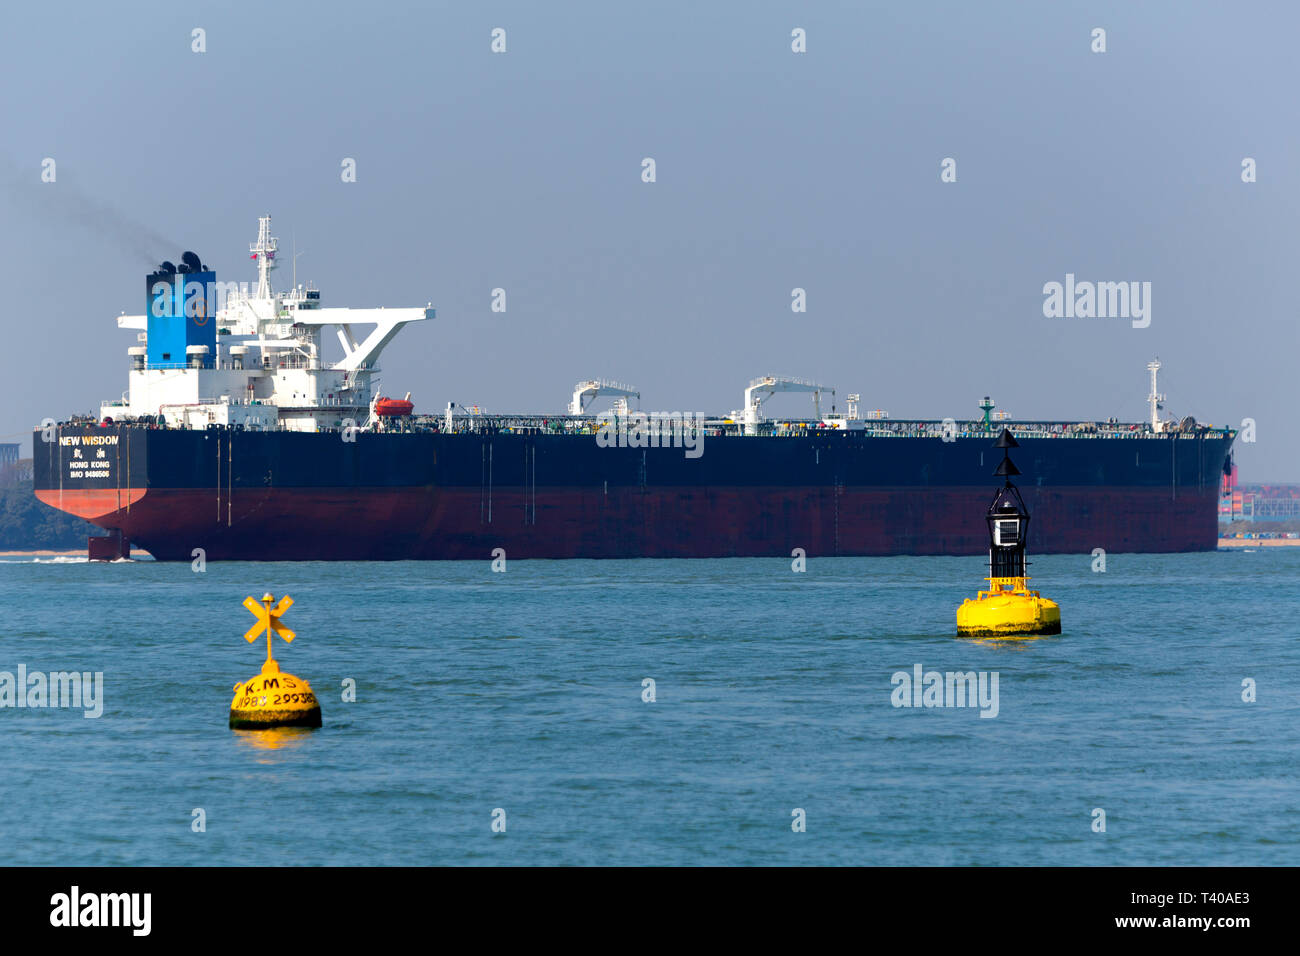 New Wisdom,registered,Chemical,Southampton,services,port,towing,Tanker,Oil,Refinery,Fawley,The Stock Photo